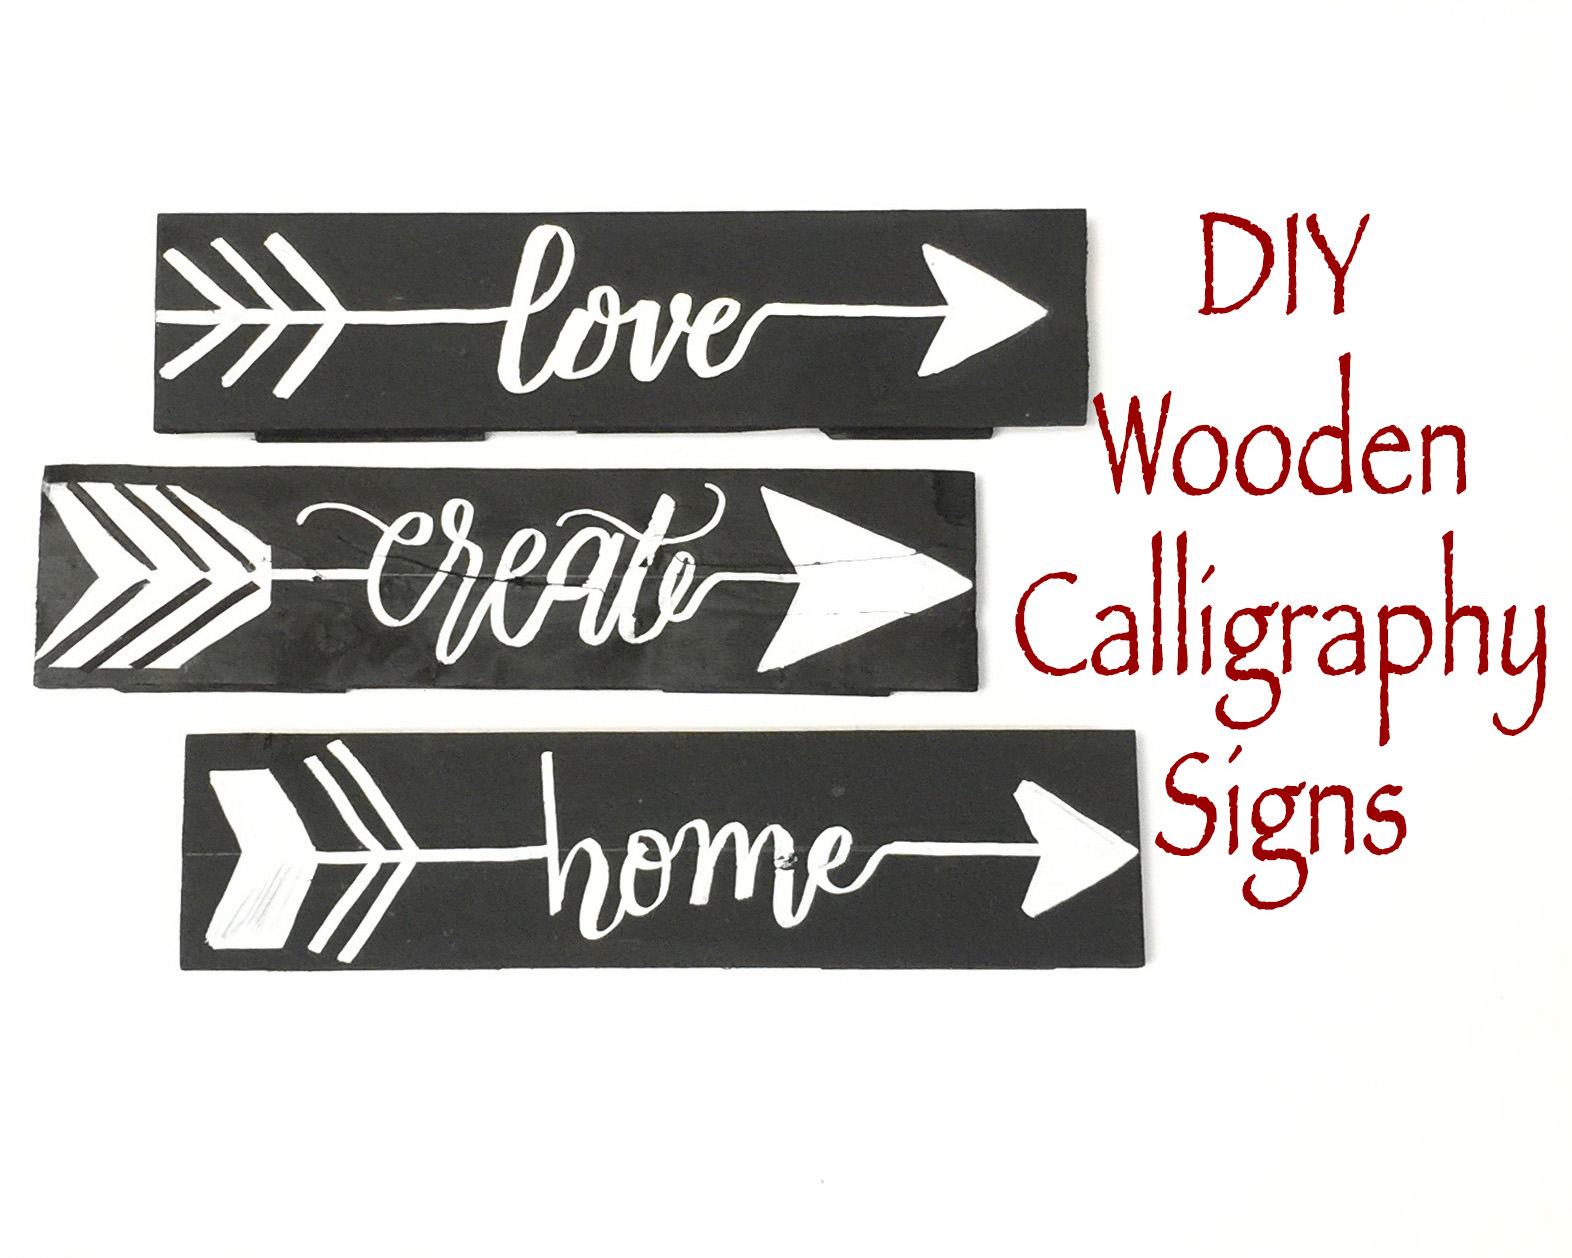 Creating Calligraphy Wooden Signs